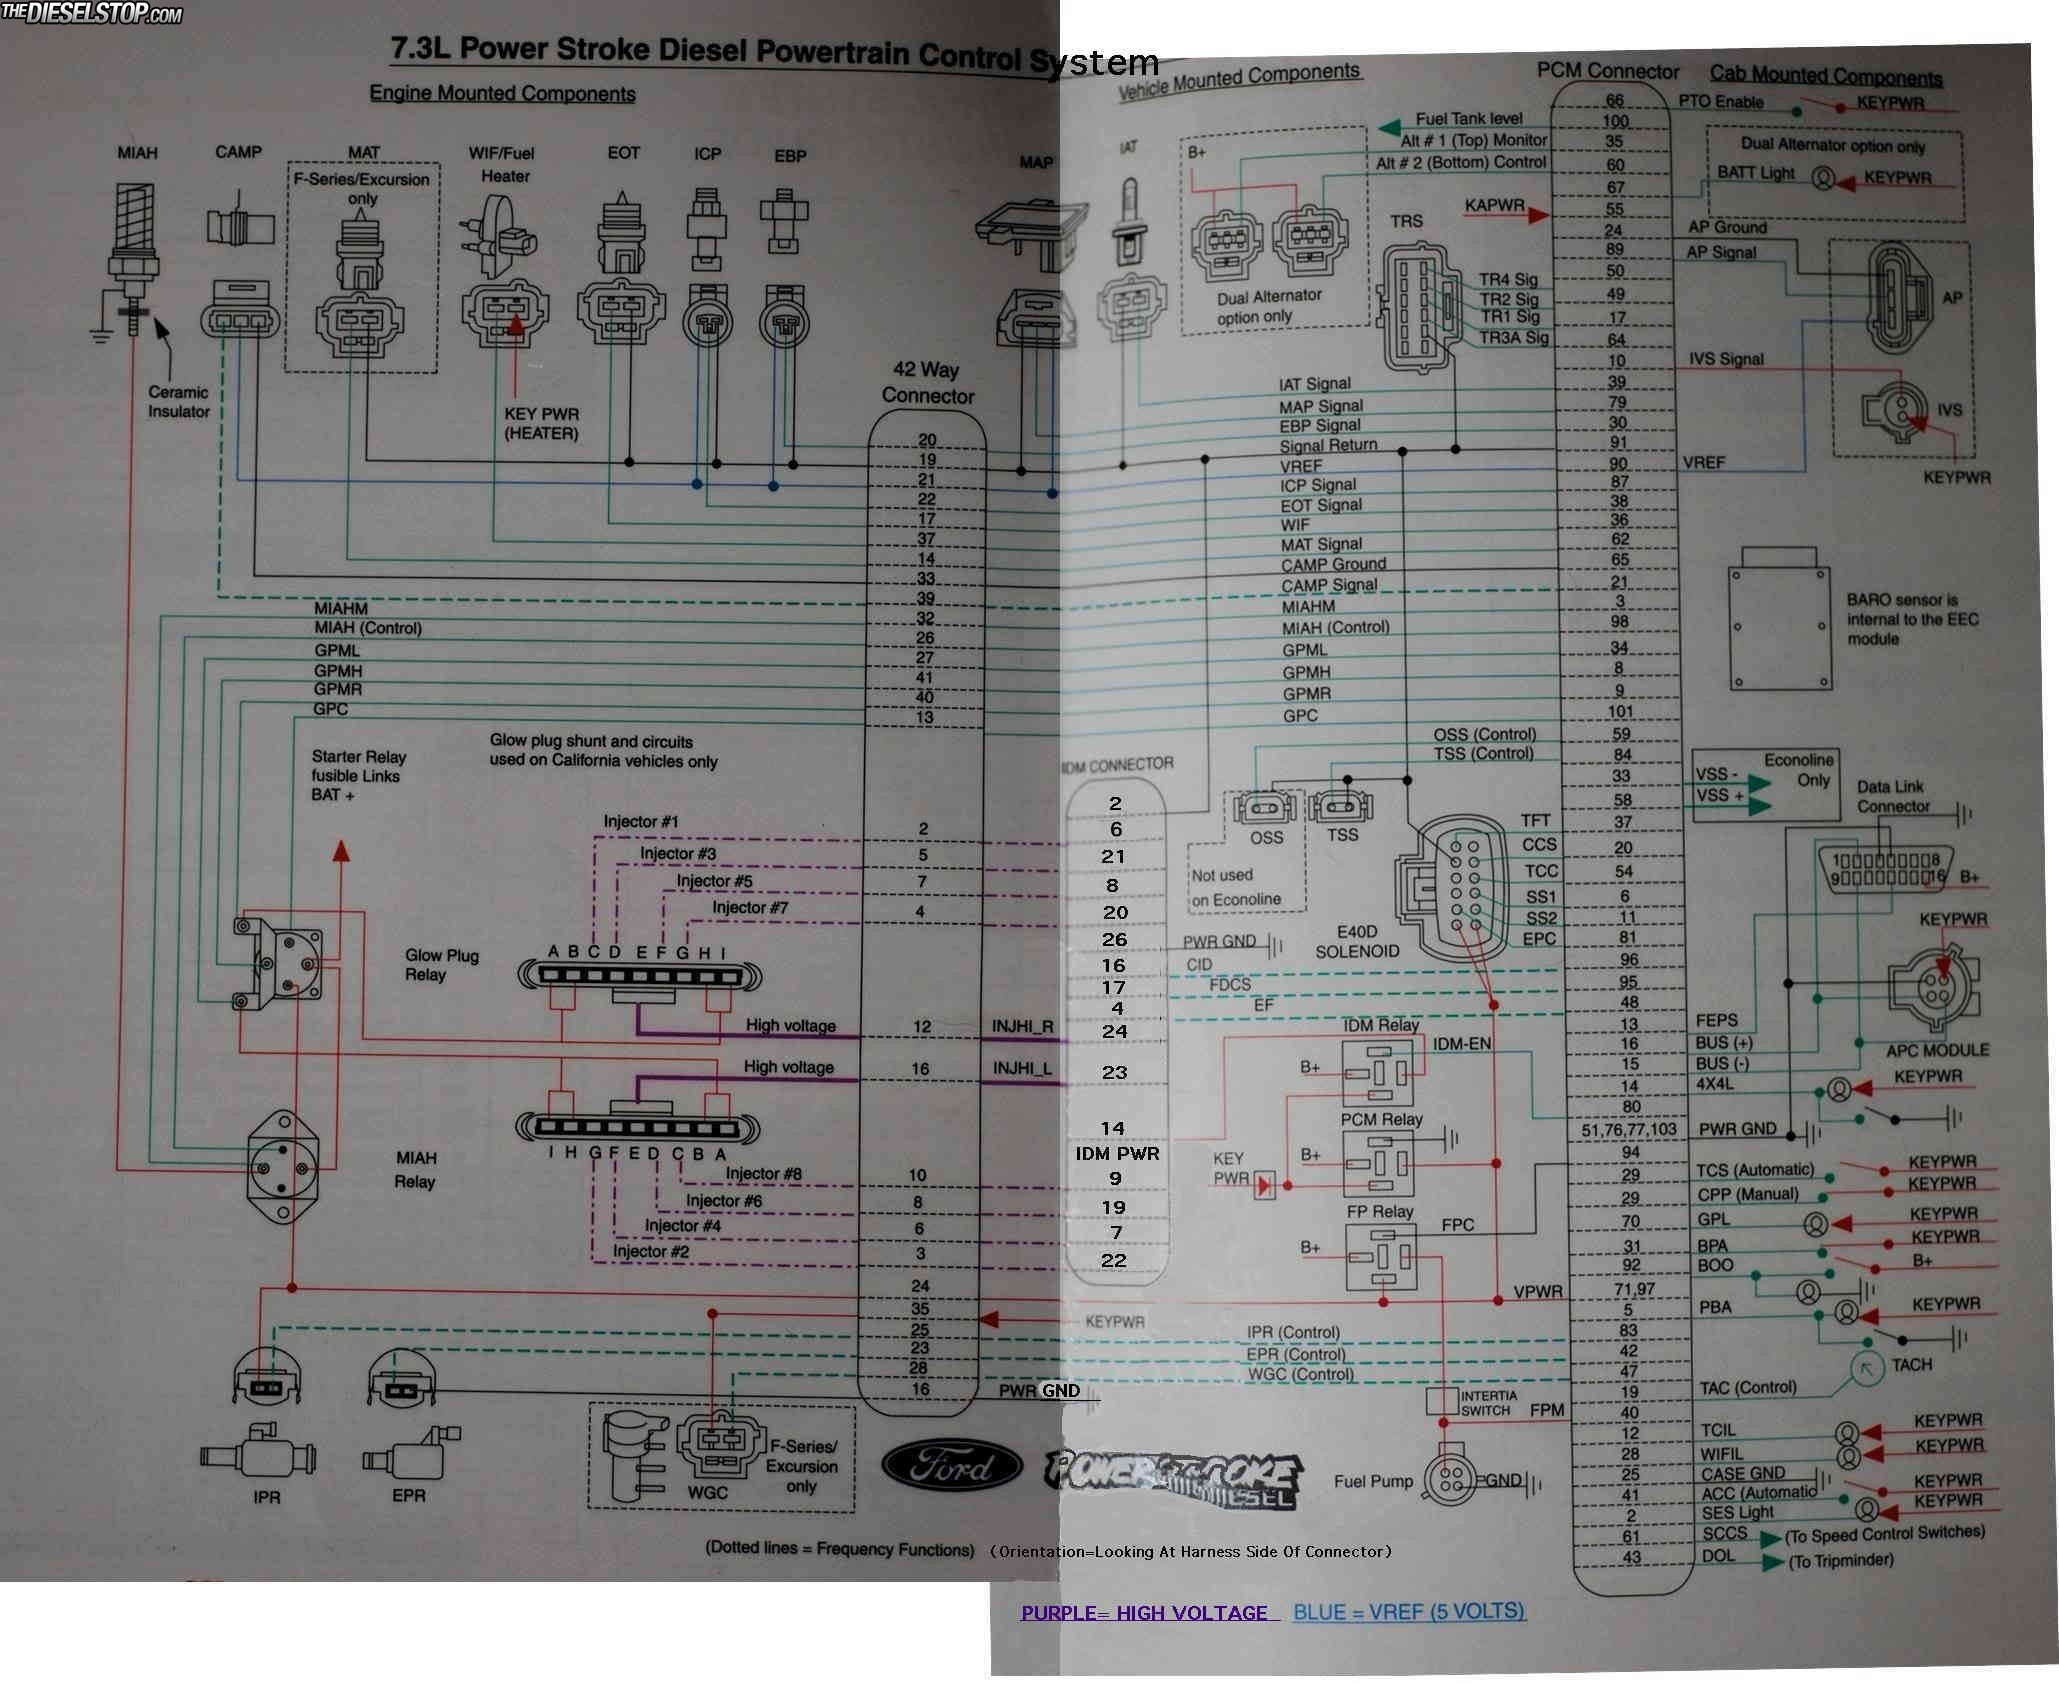 Ford 7 3 Engine Diagram 7 3l Wiring Schematic Printable Very Handy Diesel forum Of Ford 7 3 Engine Diagram